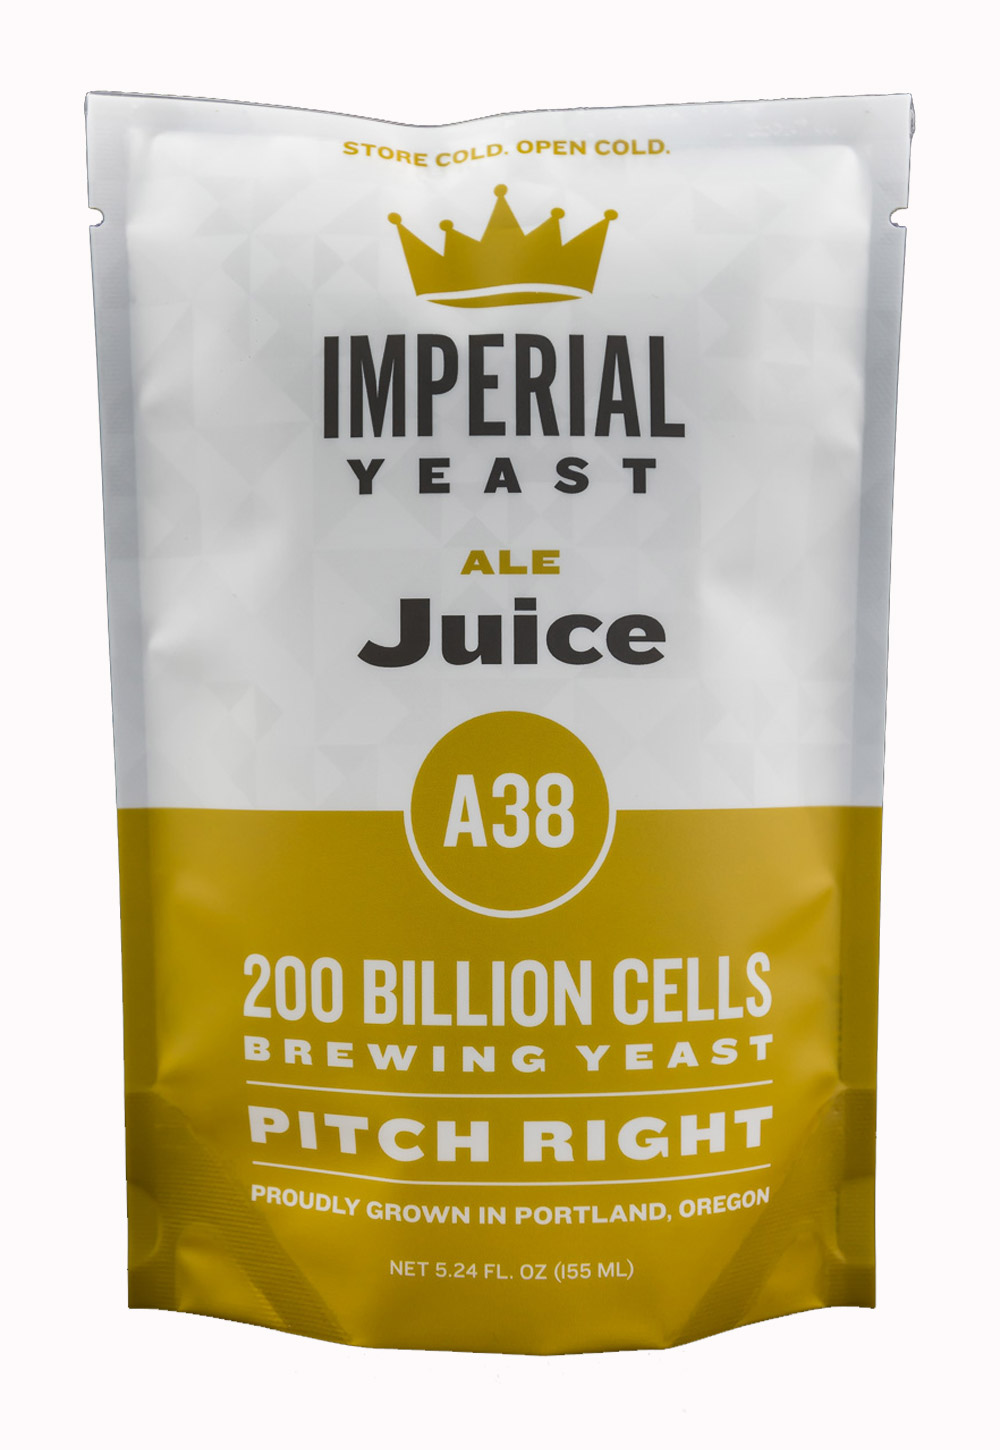 23416 imperial yeast a38 juice ale yeast